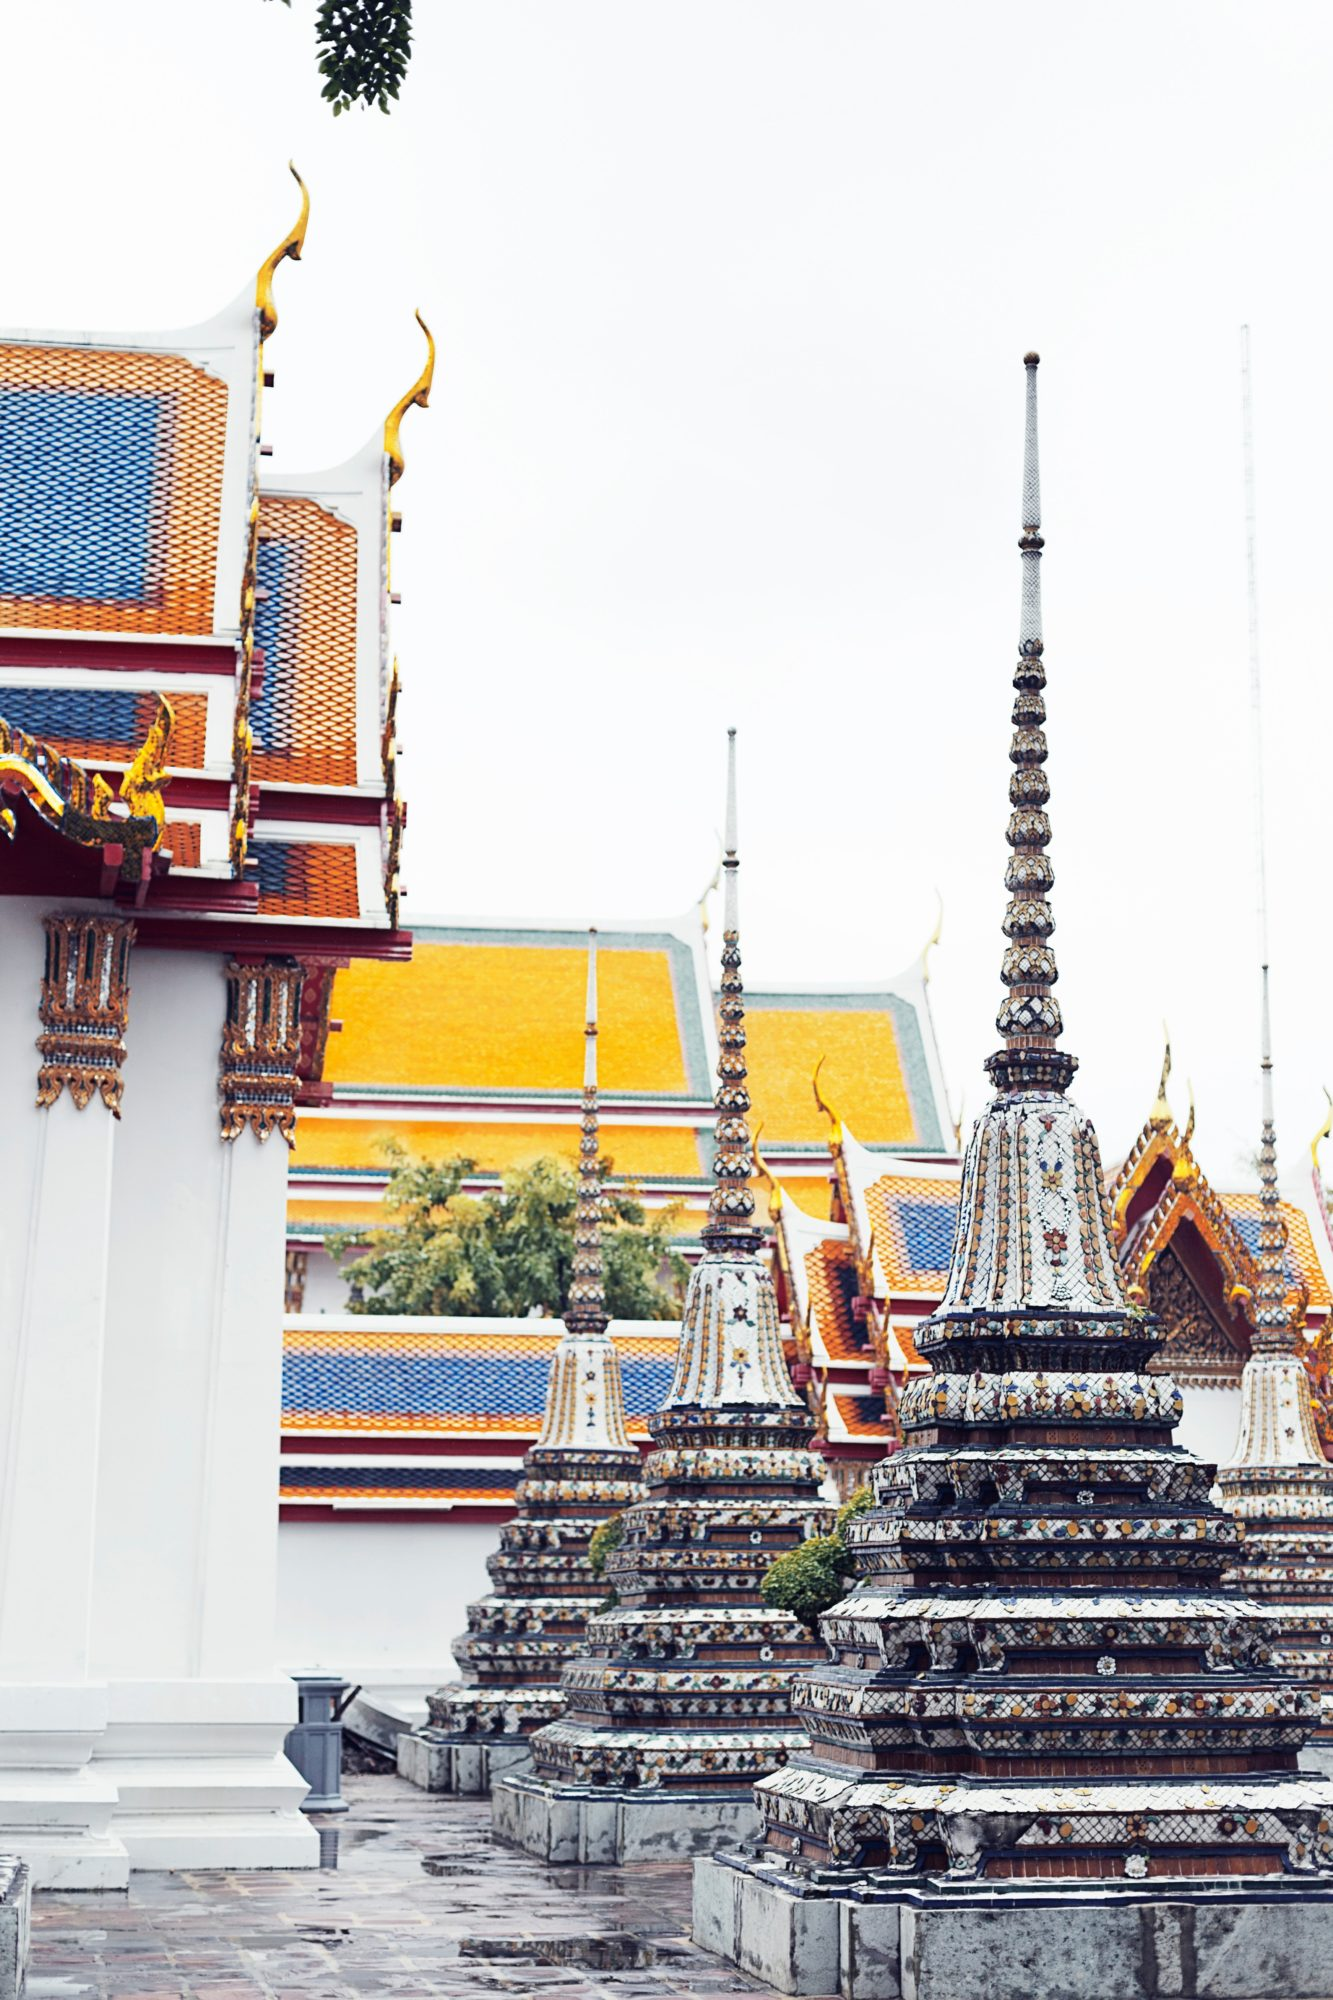 Wat Pho, Things To Do In Bangkok